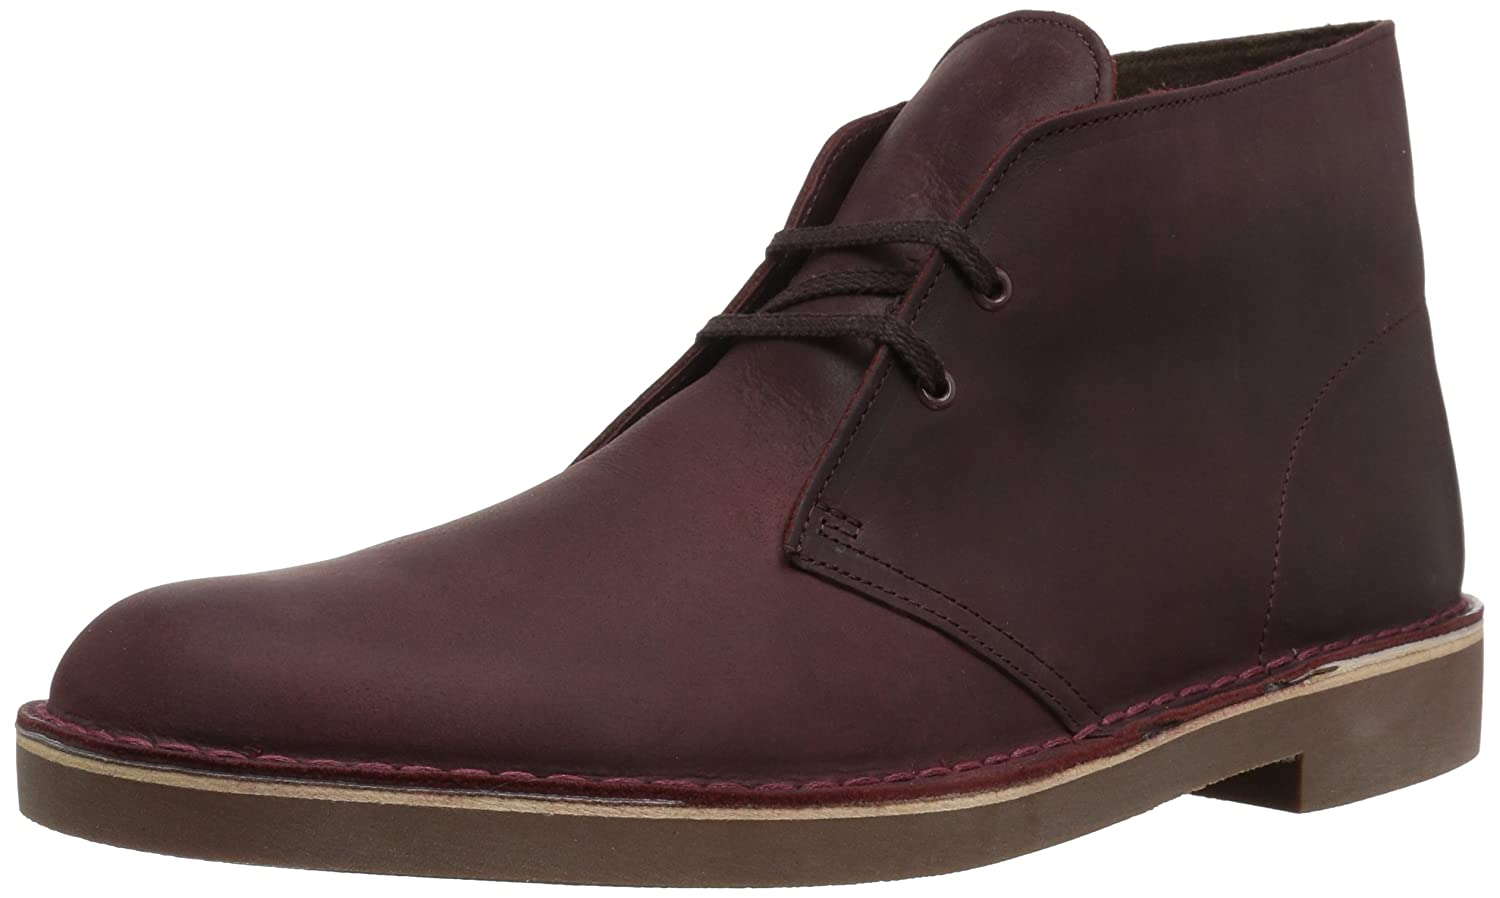 CLARKS Men's Bushacre 2 Chukka Boot -